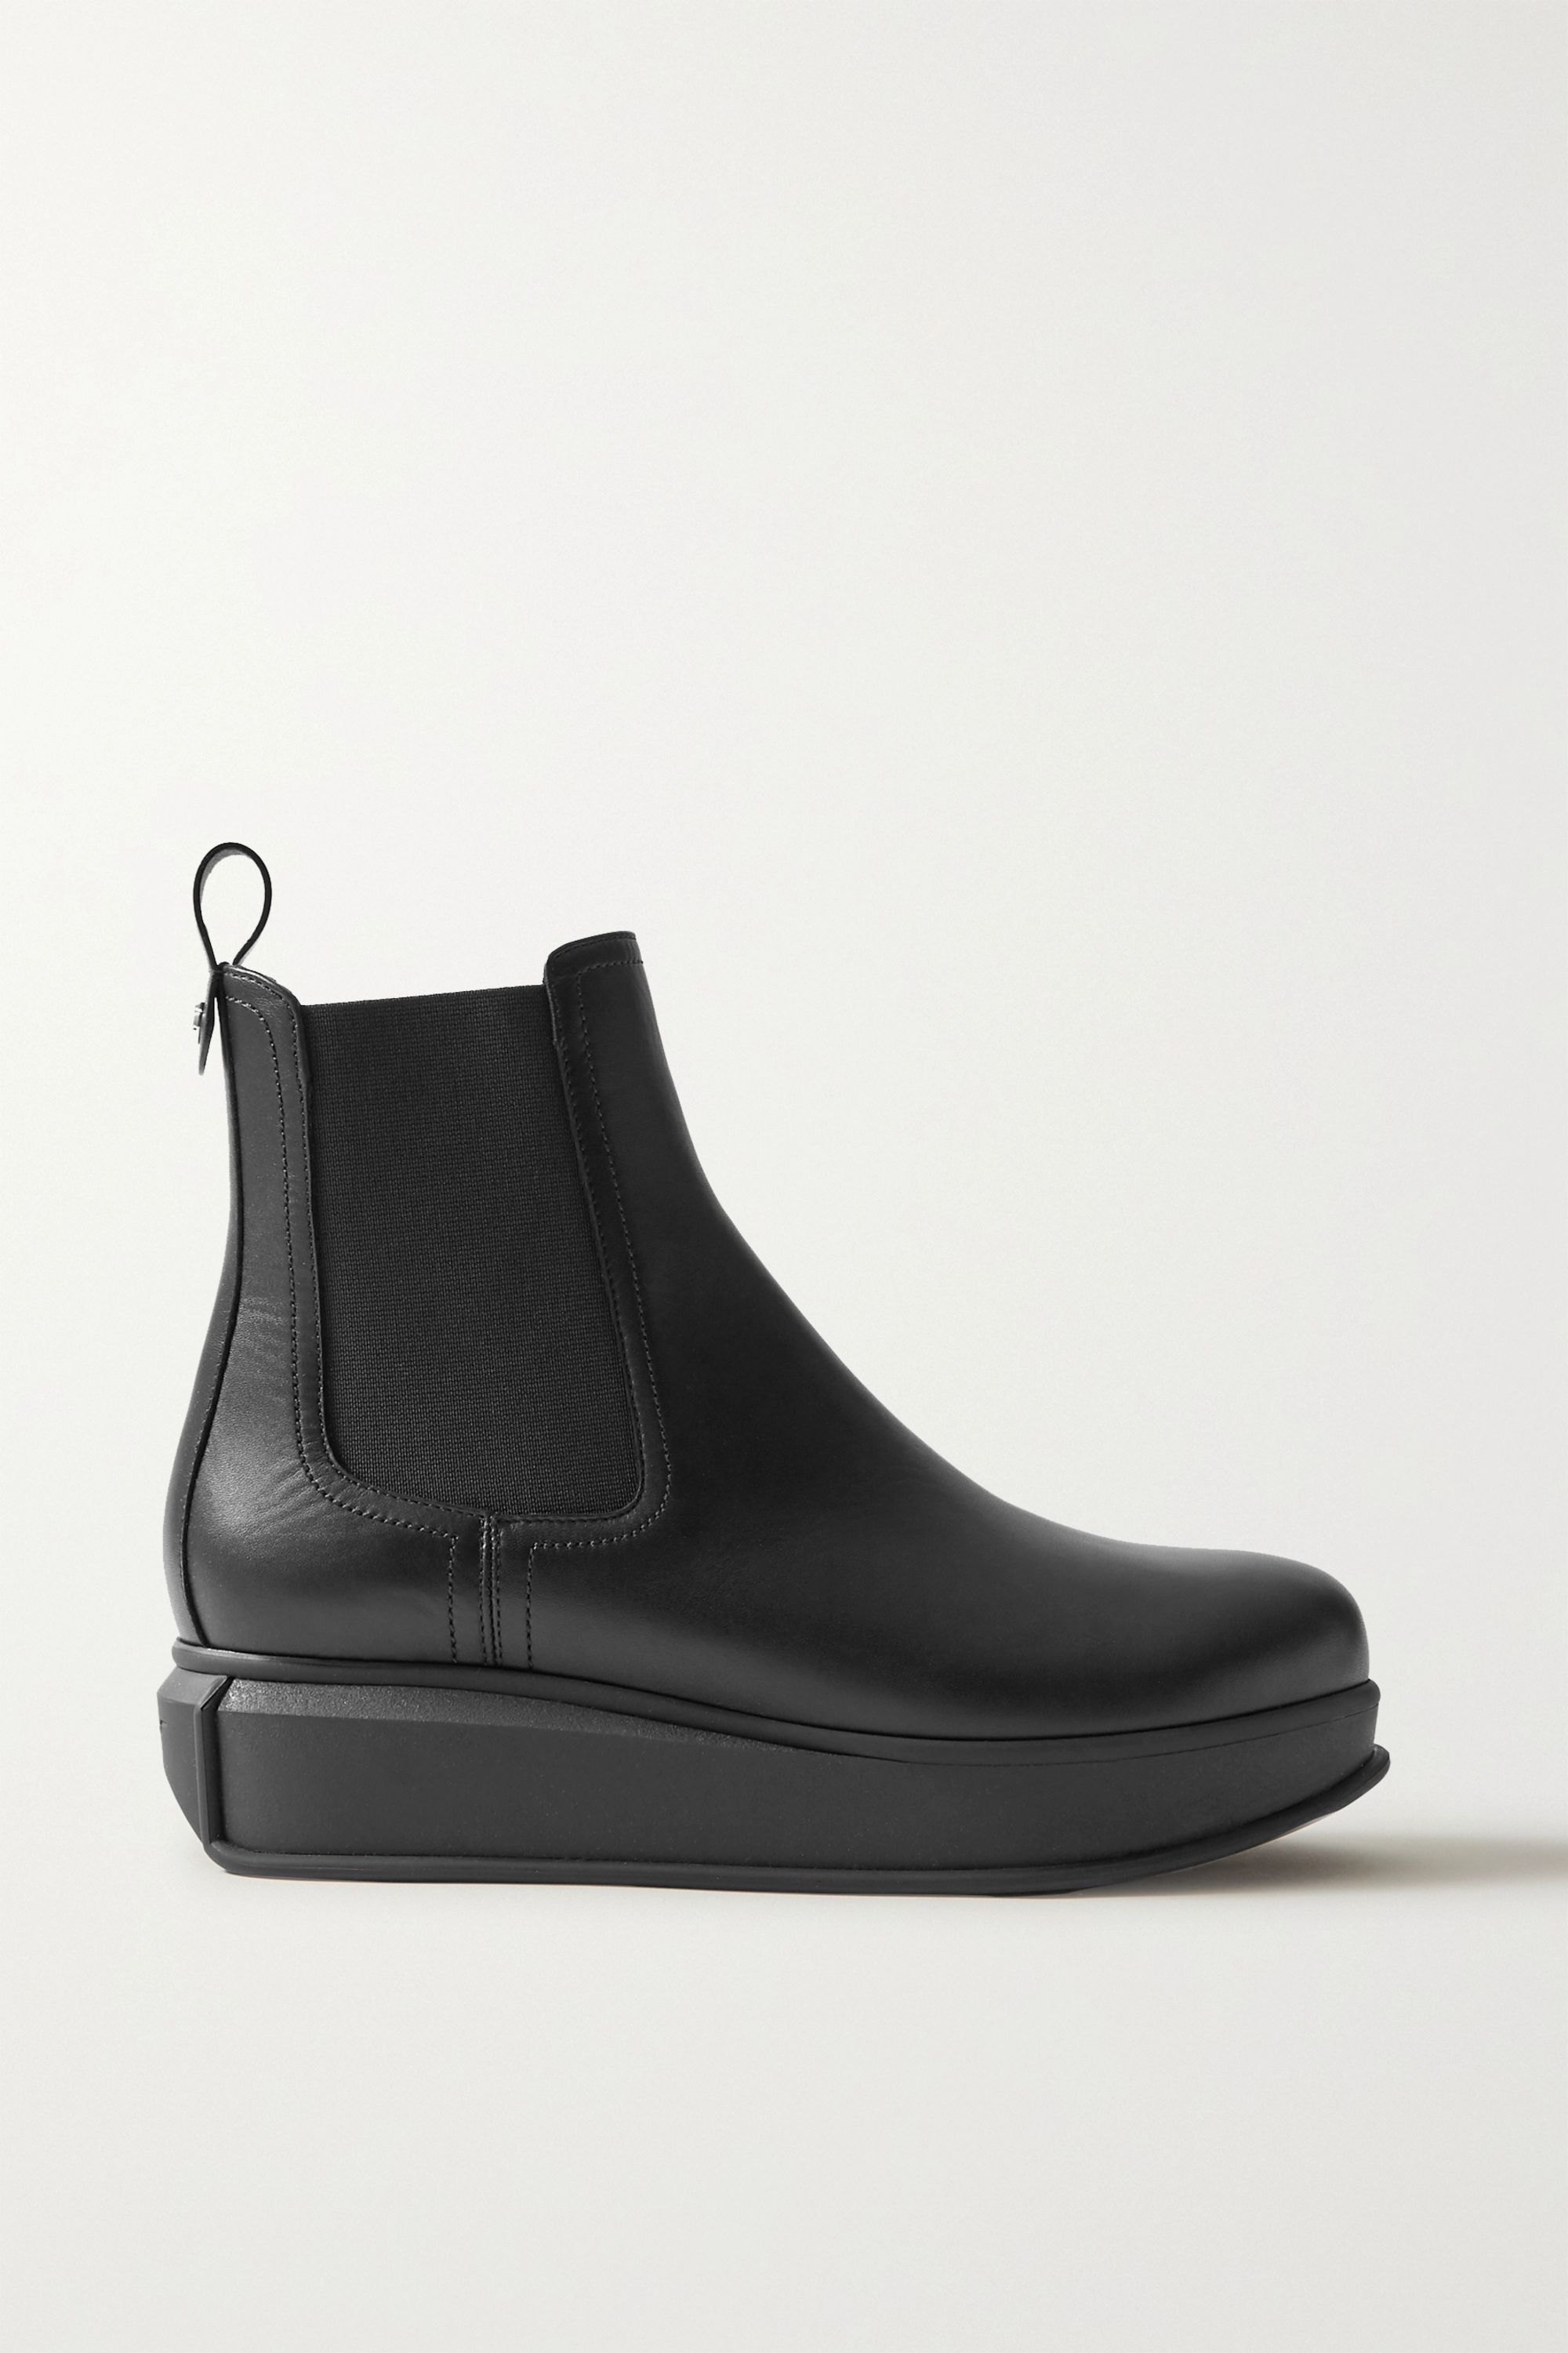 Salvatore Ferragamo Kay leather Chelsea boots